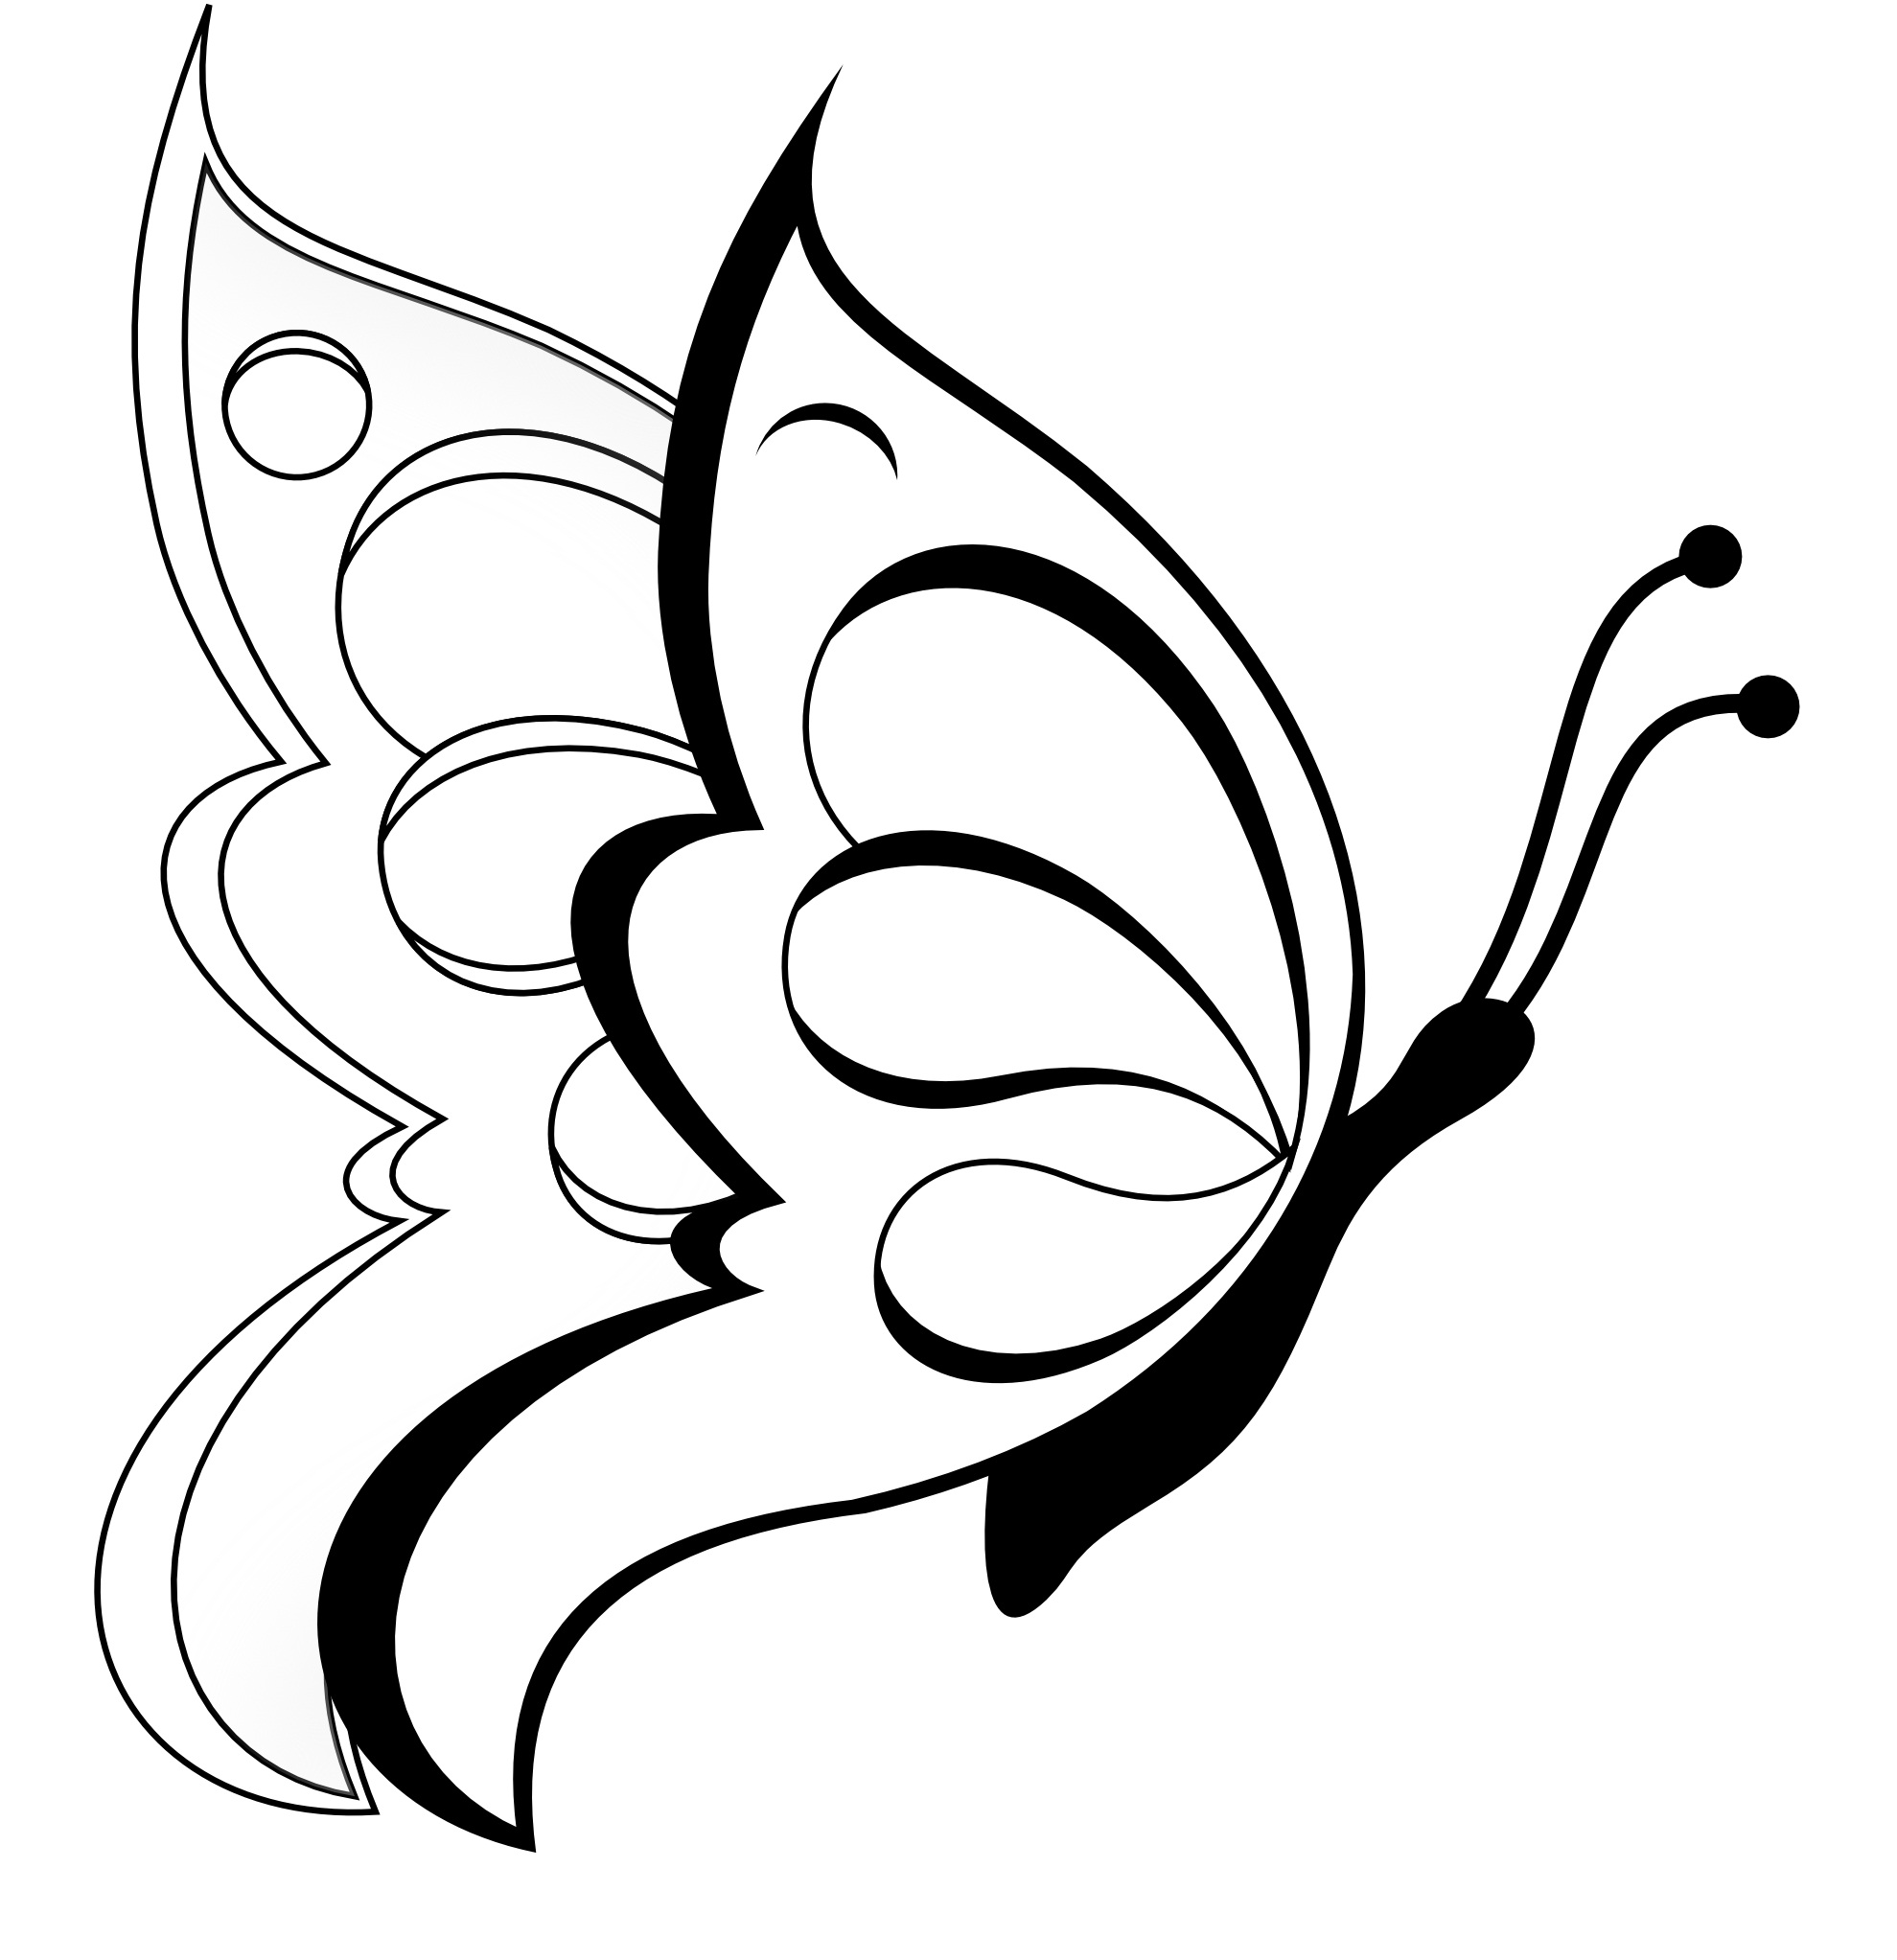 kids butterfly coloring pages - Drawings For Kids To Color